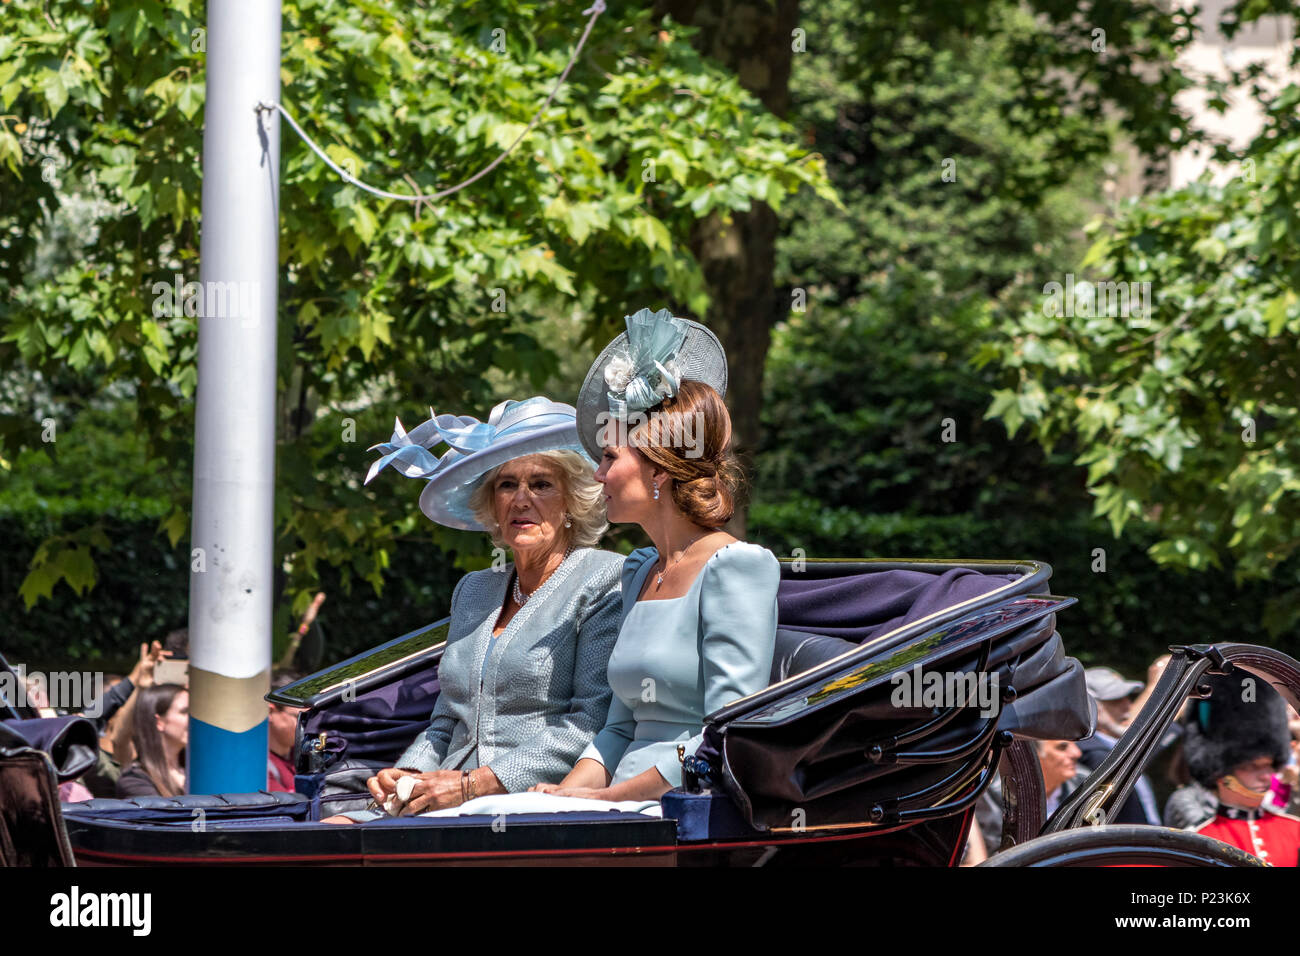 HRH The Duchess Of Cambridge,Kate Middleton & HRH The Duchess Of Cornwall  riding together in a carriage at The Trooping Of The Colour Ceremony 2018 - Stock Image